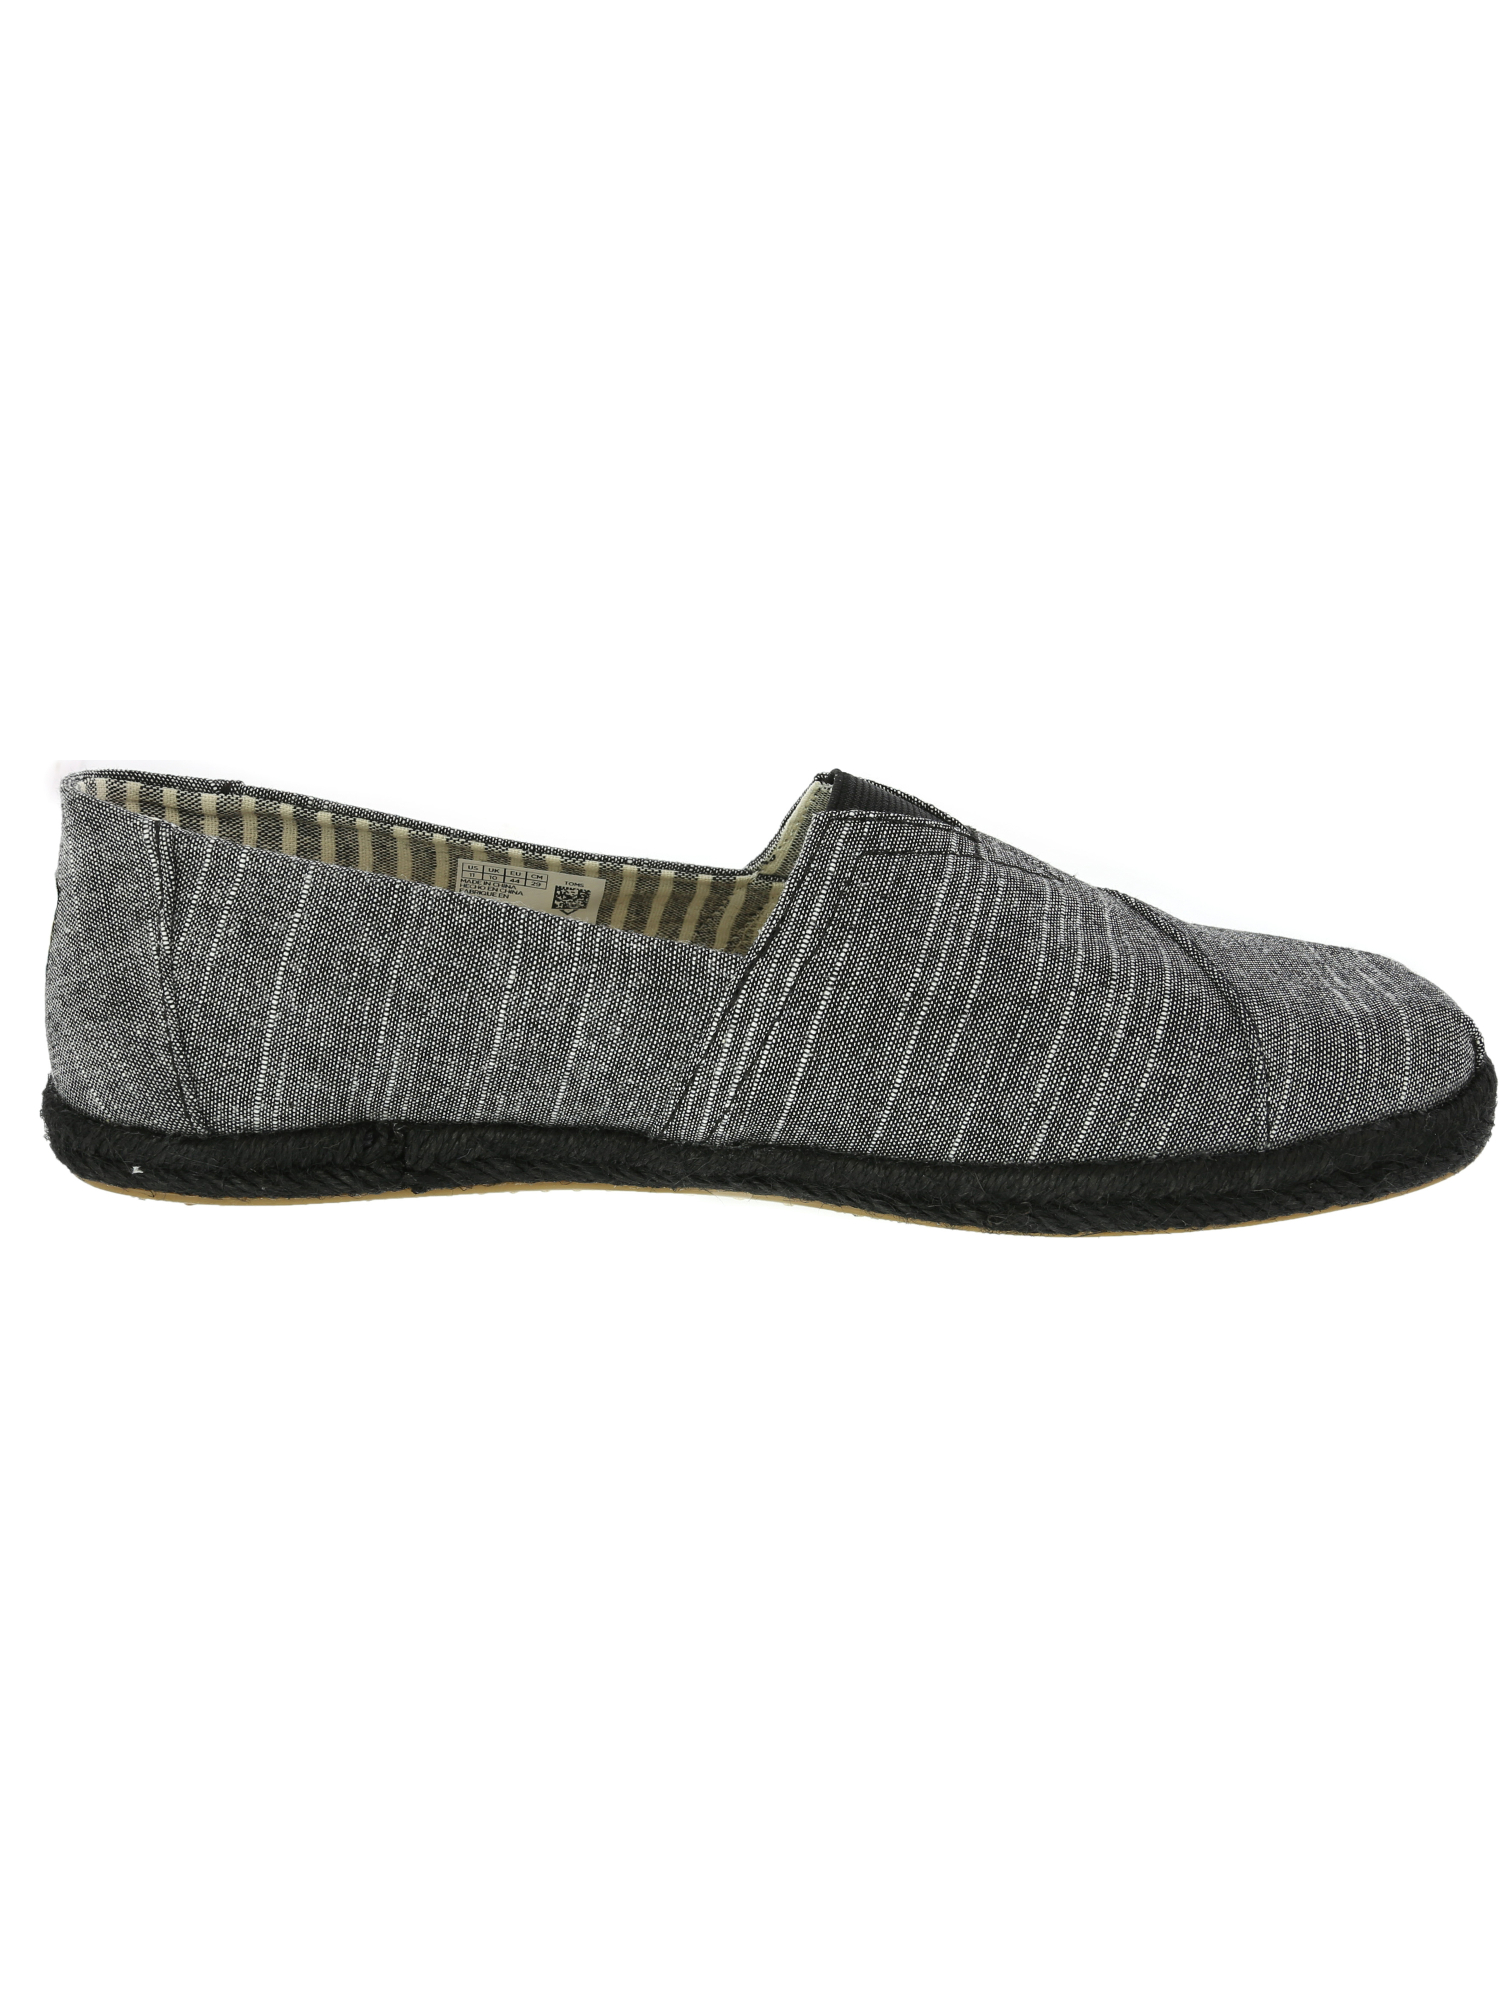 Toms-Men-039-s-Classic-Rugged-Chambray-Fabric-Slip-On-Shoes thumbnail 5